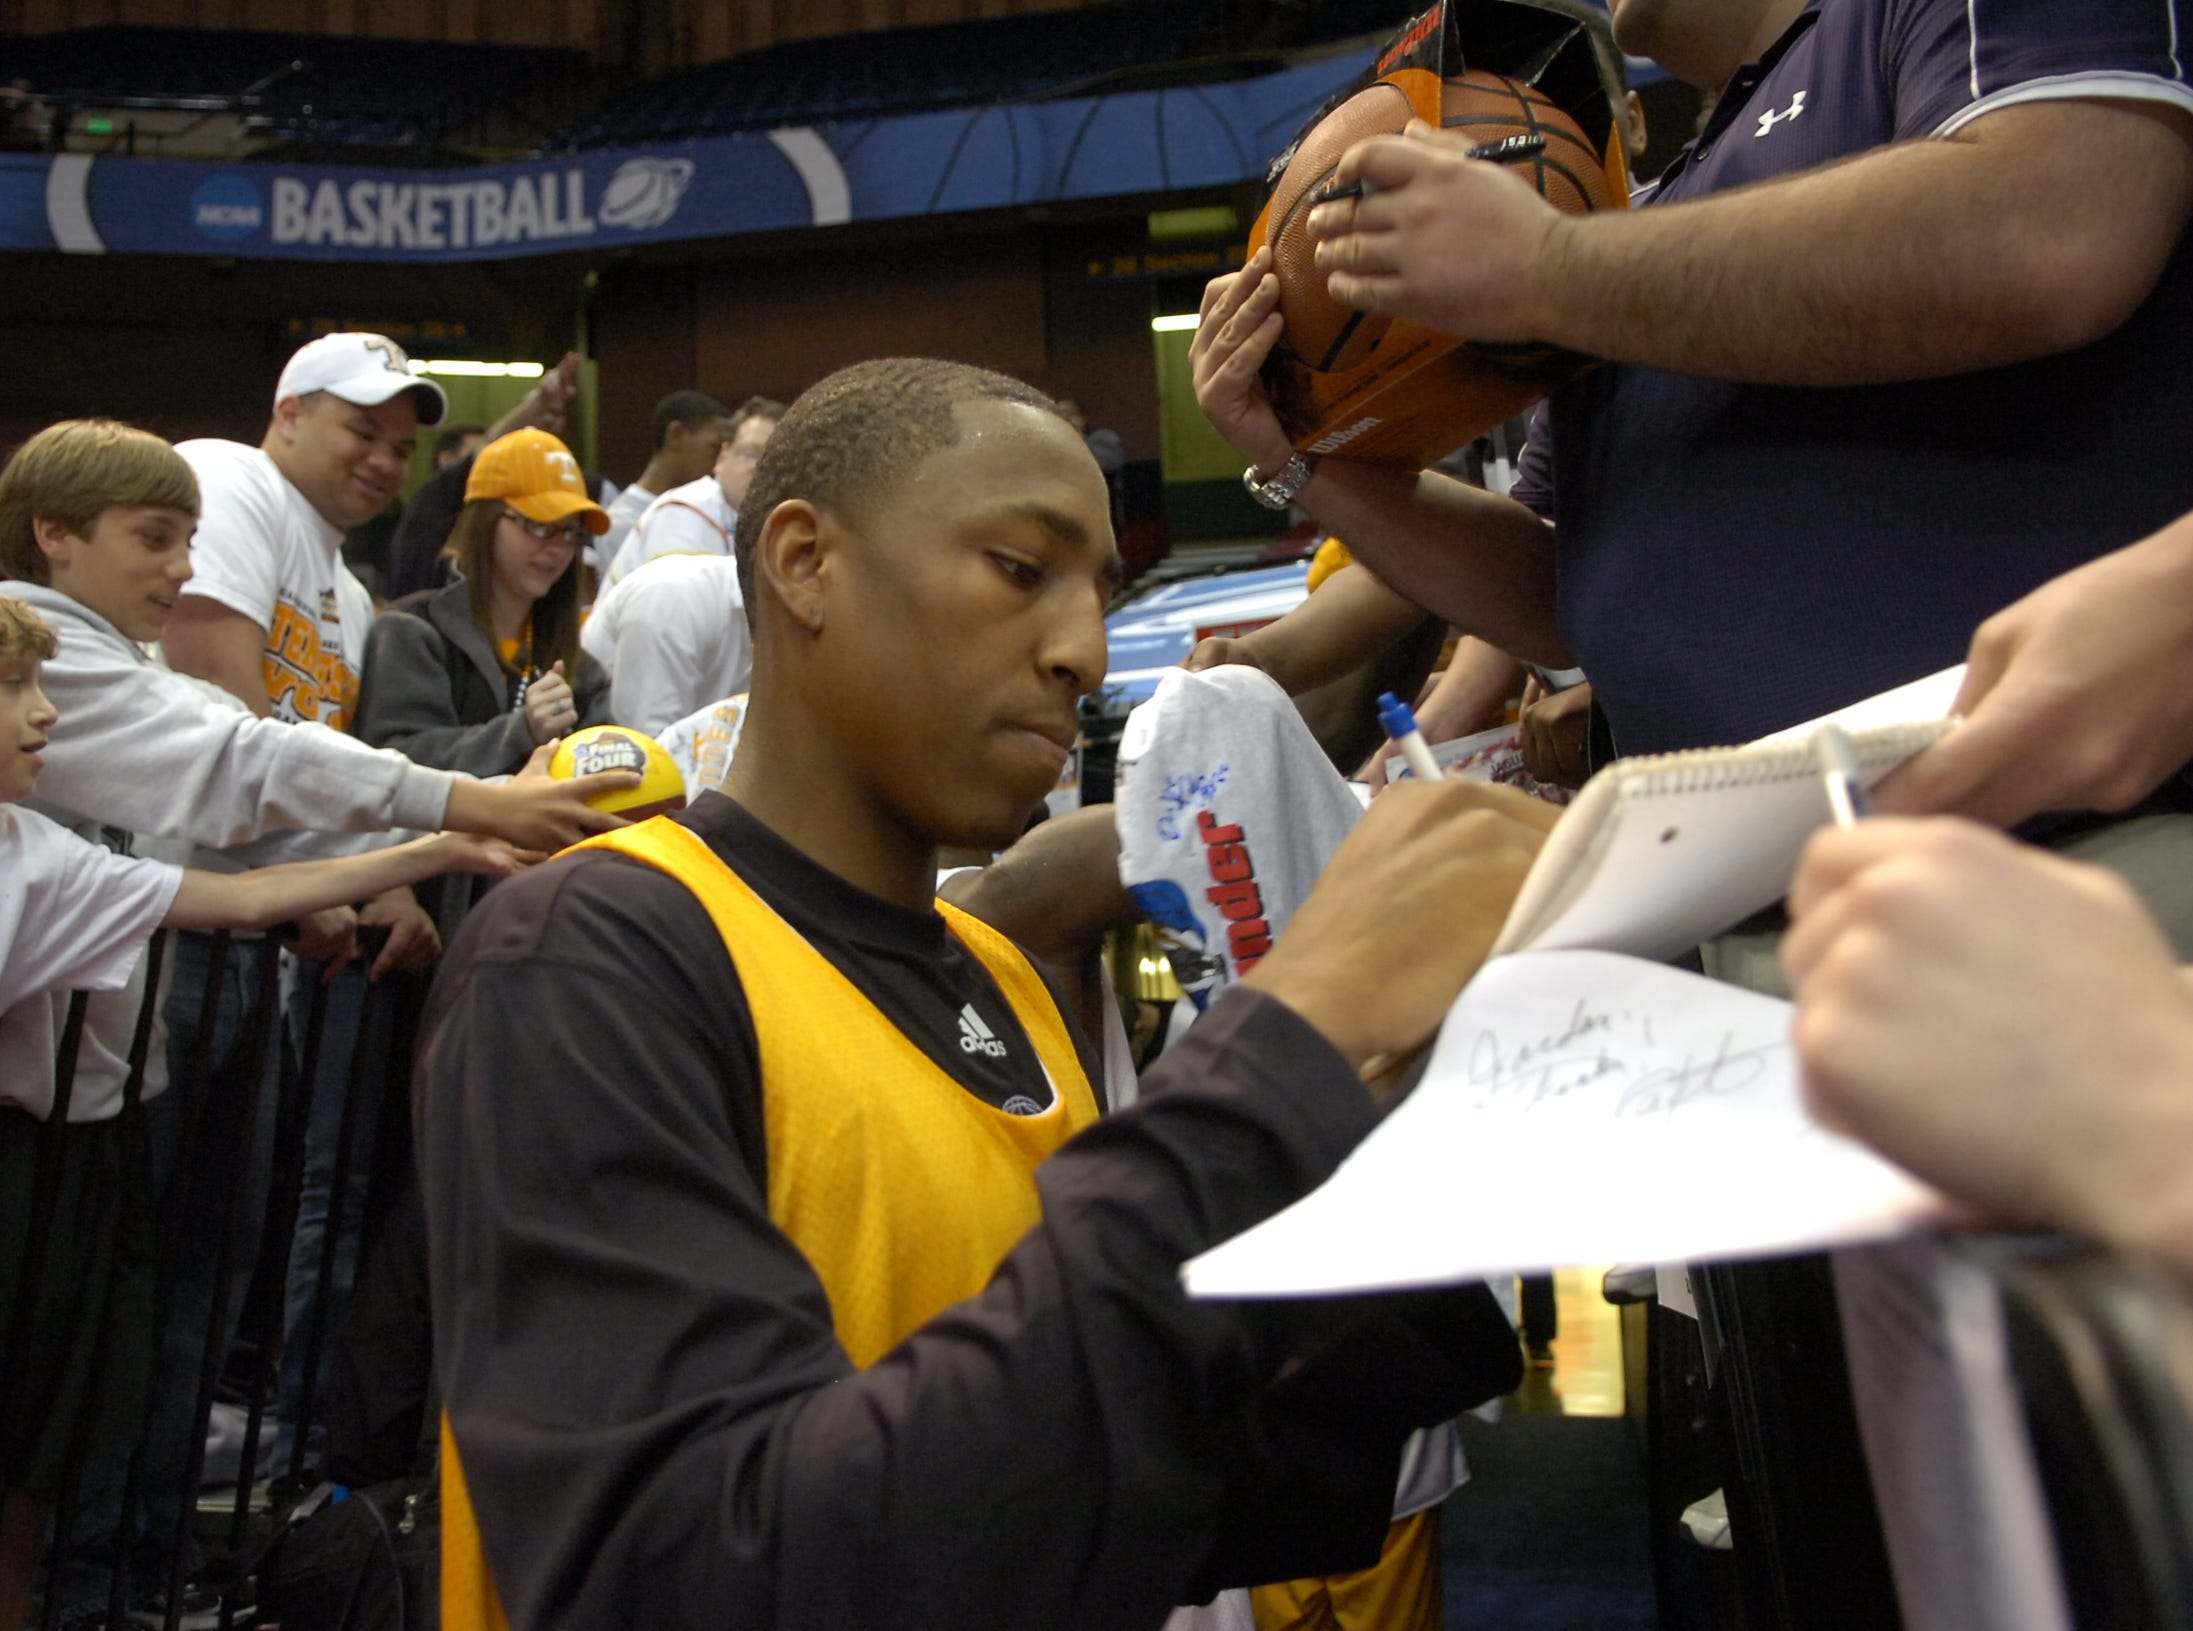 Tennessee's JaJuan Smith signs autographs for fans during a day of practice and press conferences to start the first round of the 2008 NCAA Tournament in Birmingham, Alabama on Thursday. Tennessee will face American University at 12:15EST on Friday.